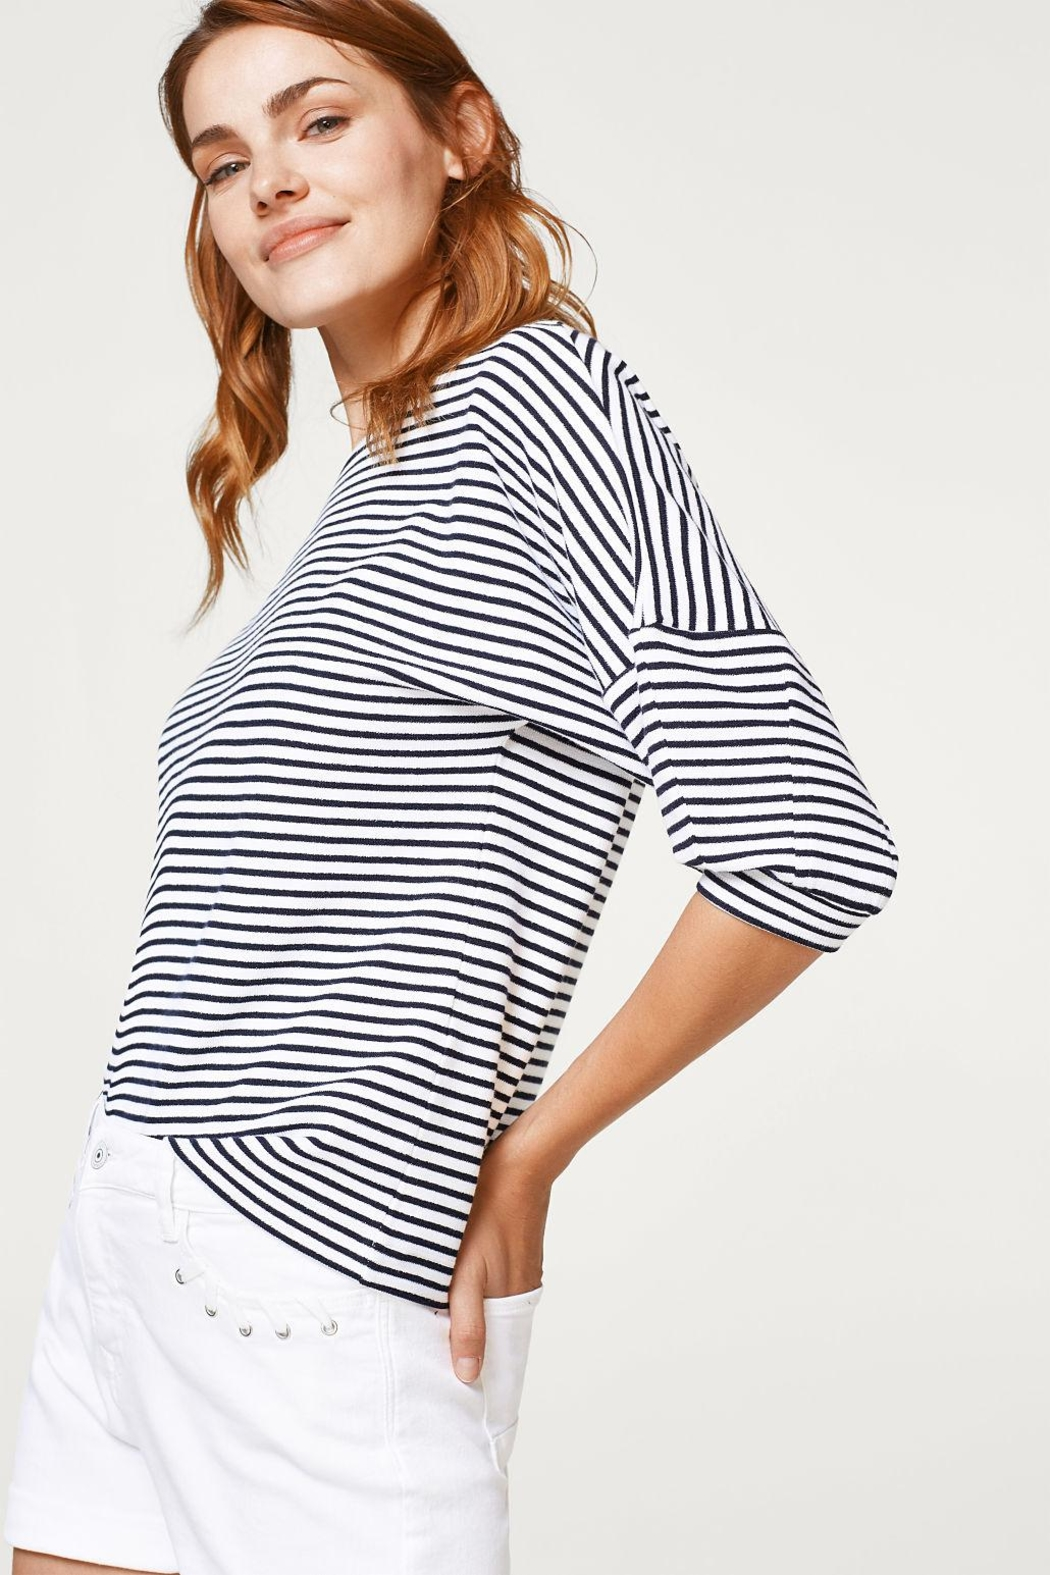 Esprit Striped Top - Side Cropped Image